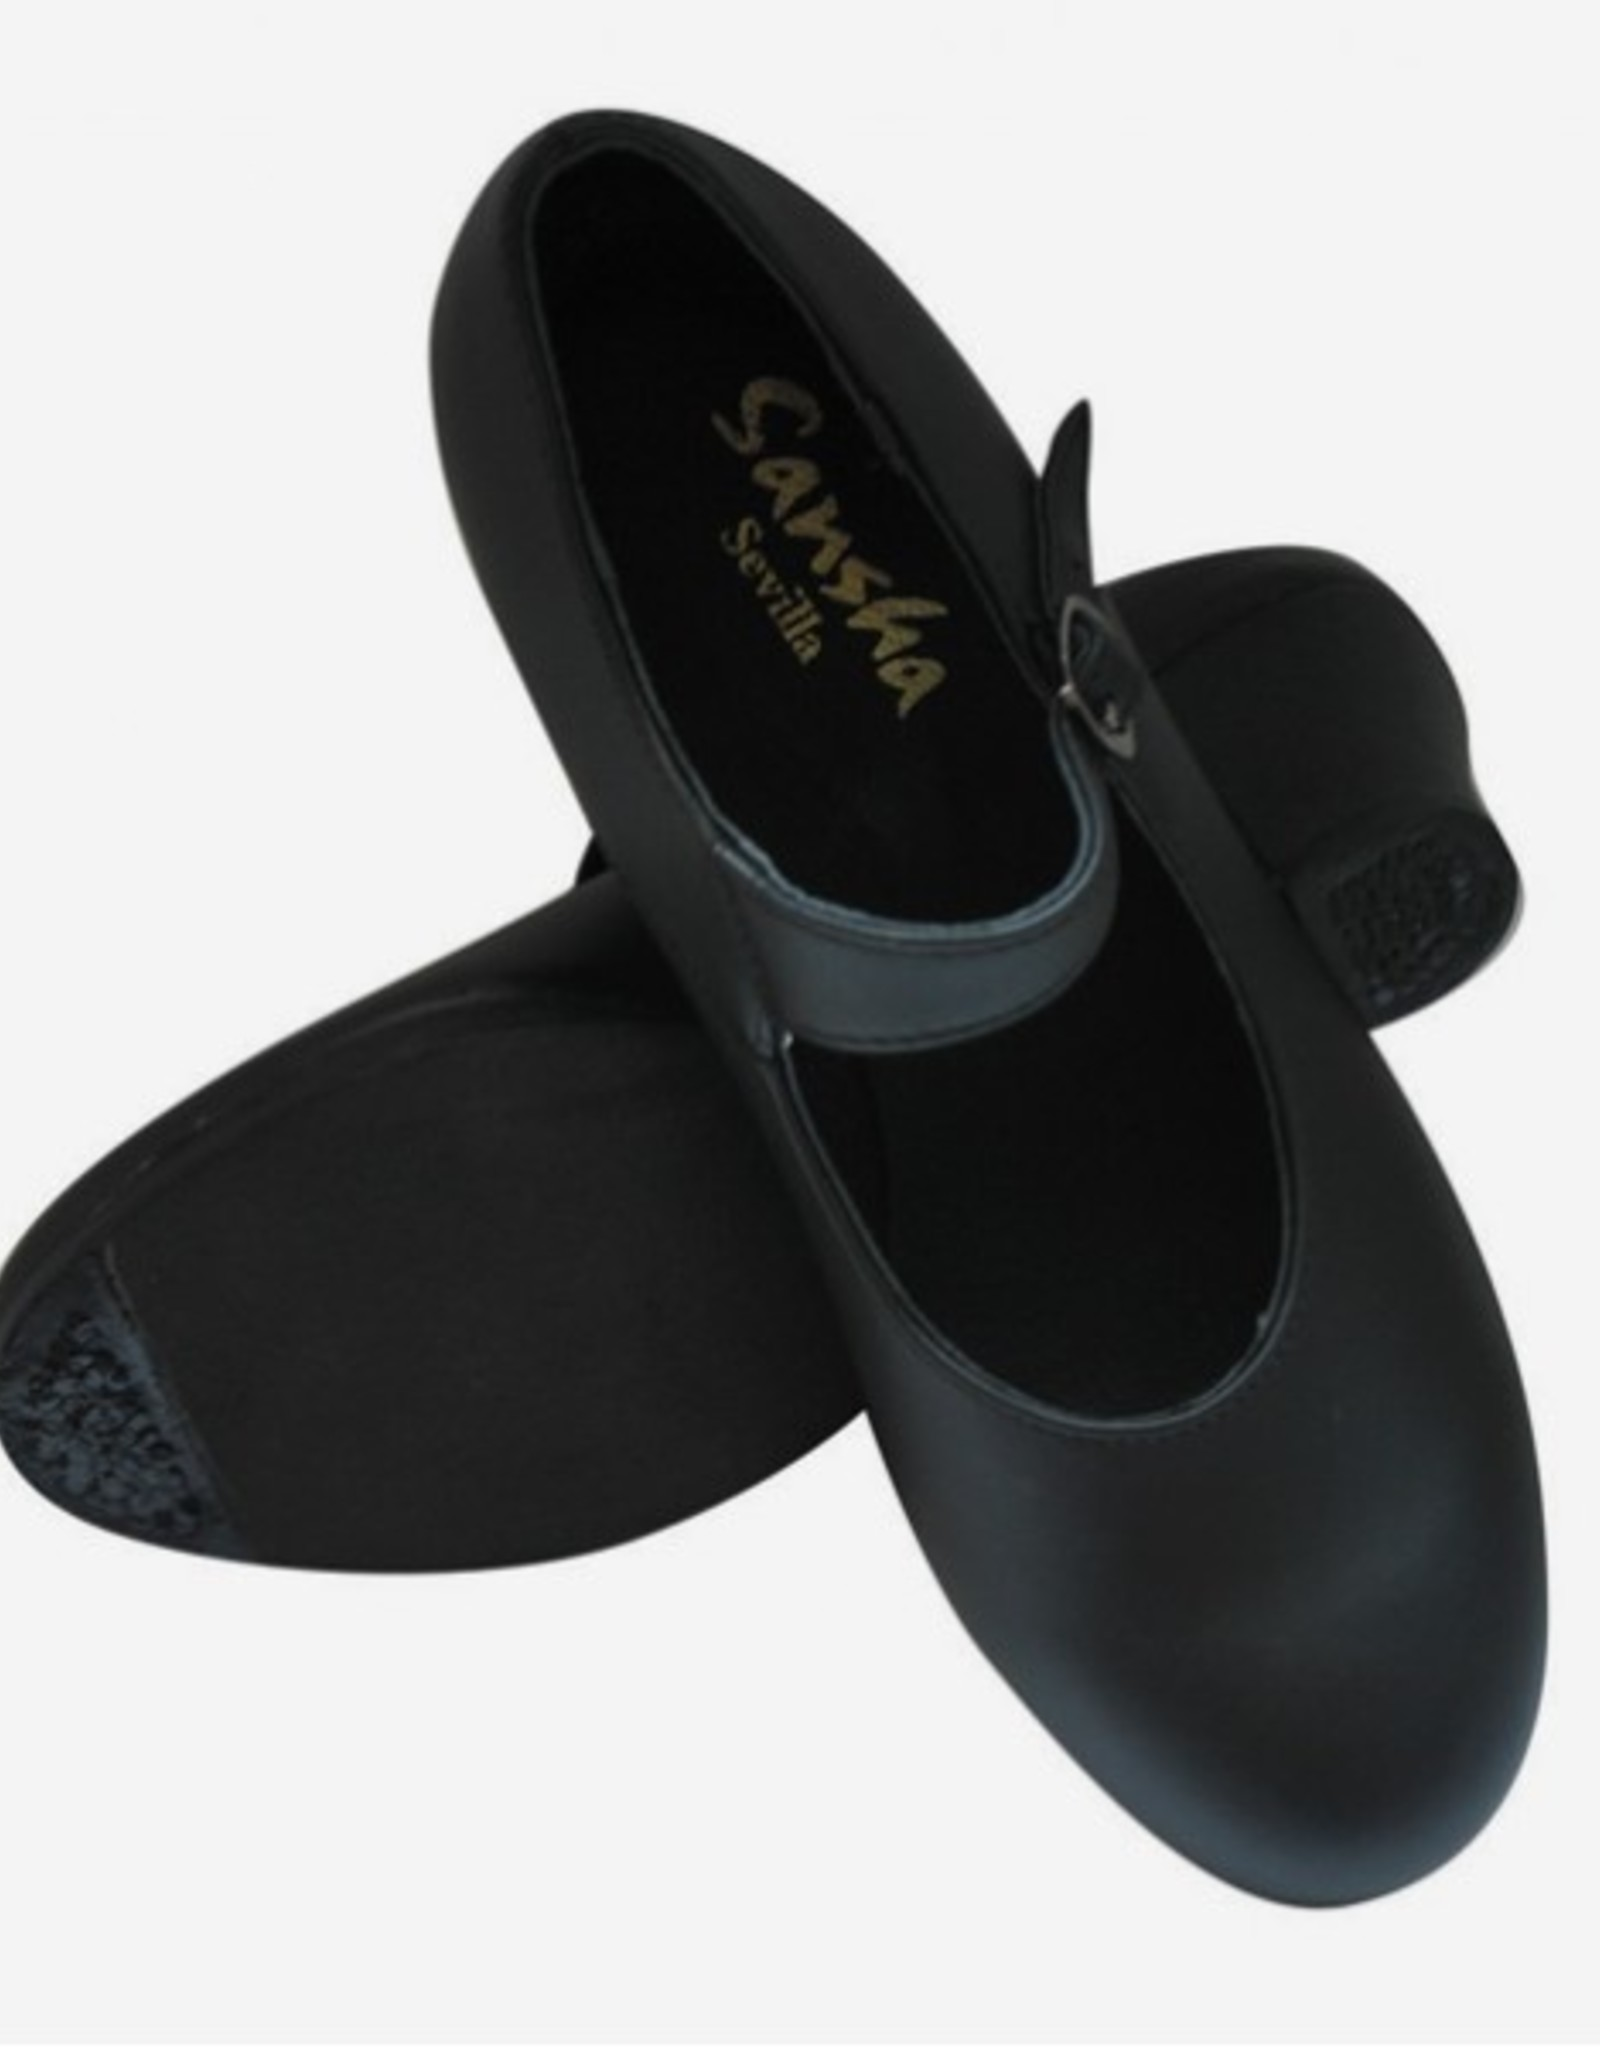 SANSHA SEVILLA FLAMENCO SHOES (FL1)